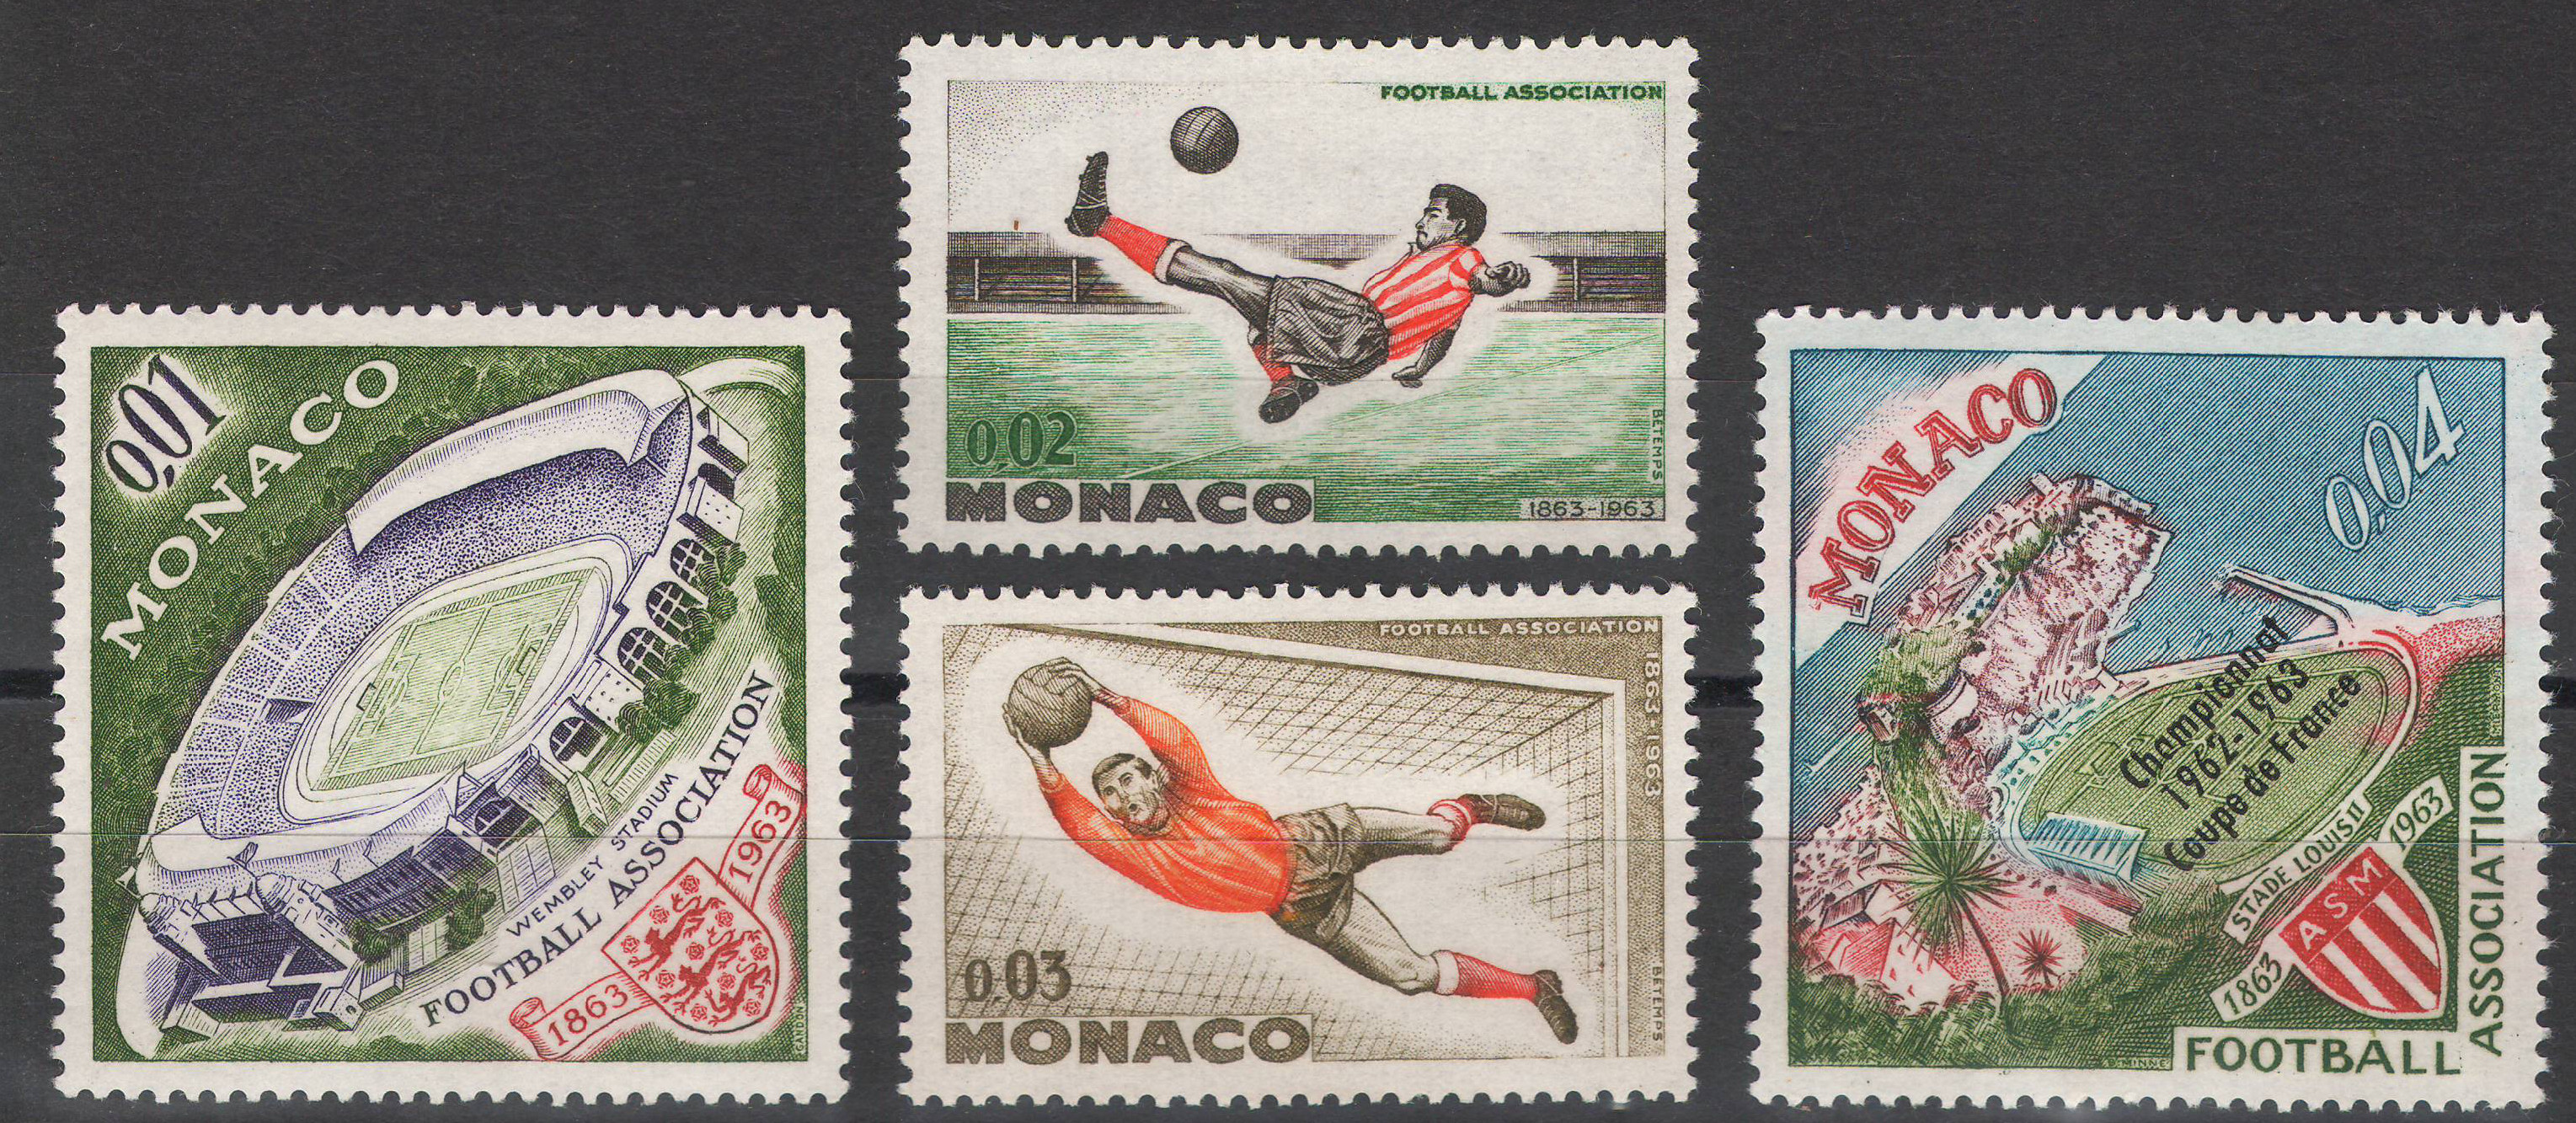 Monaco - 1963 - Football - MNH but 0,04 is MLH